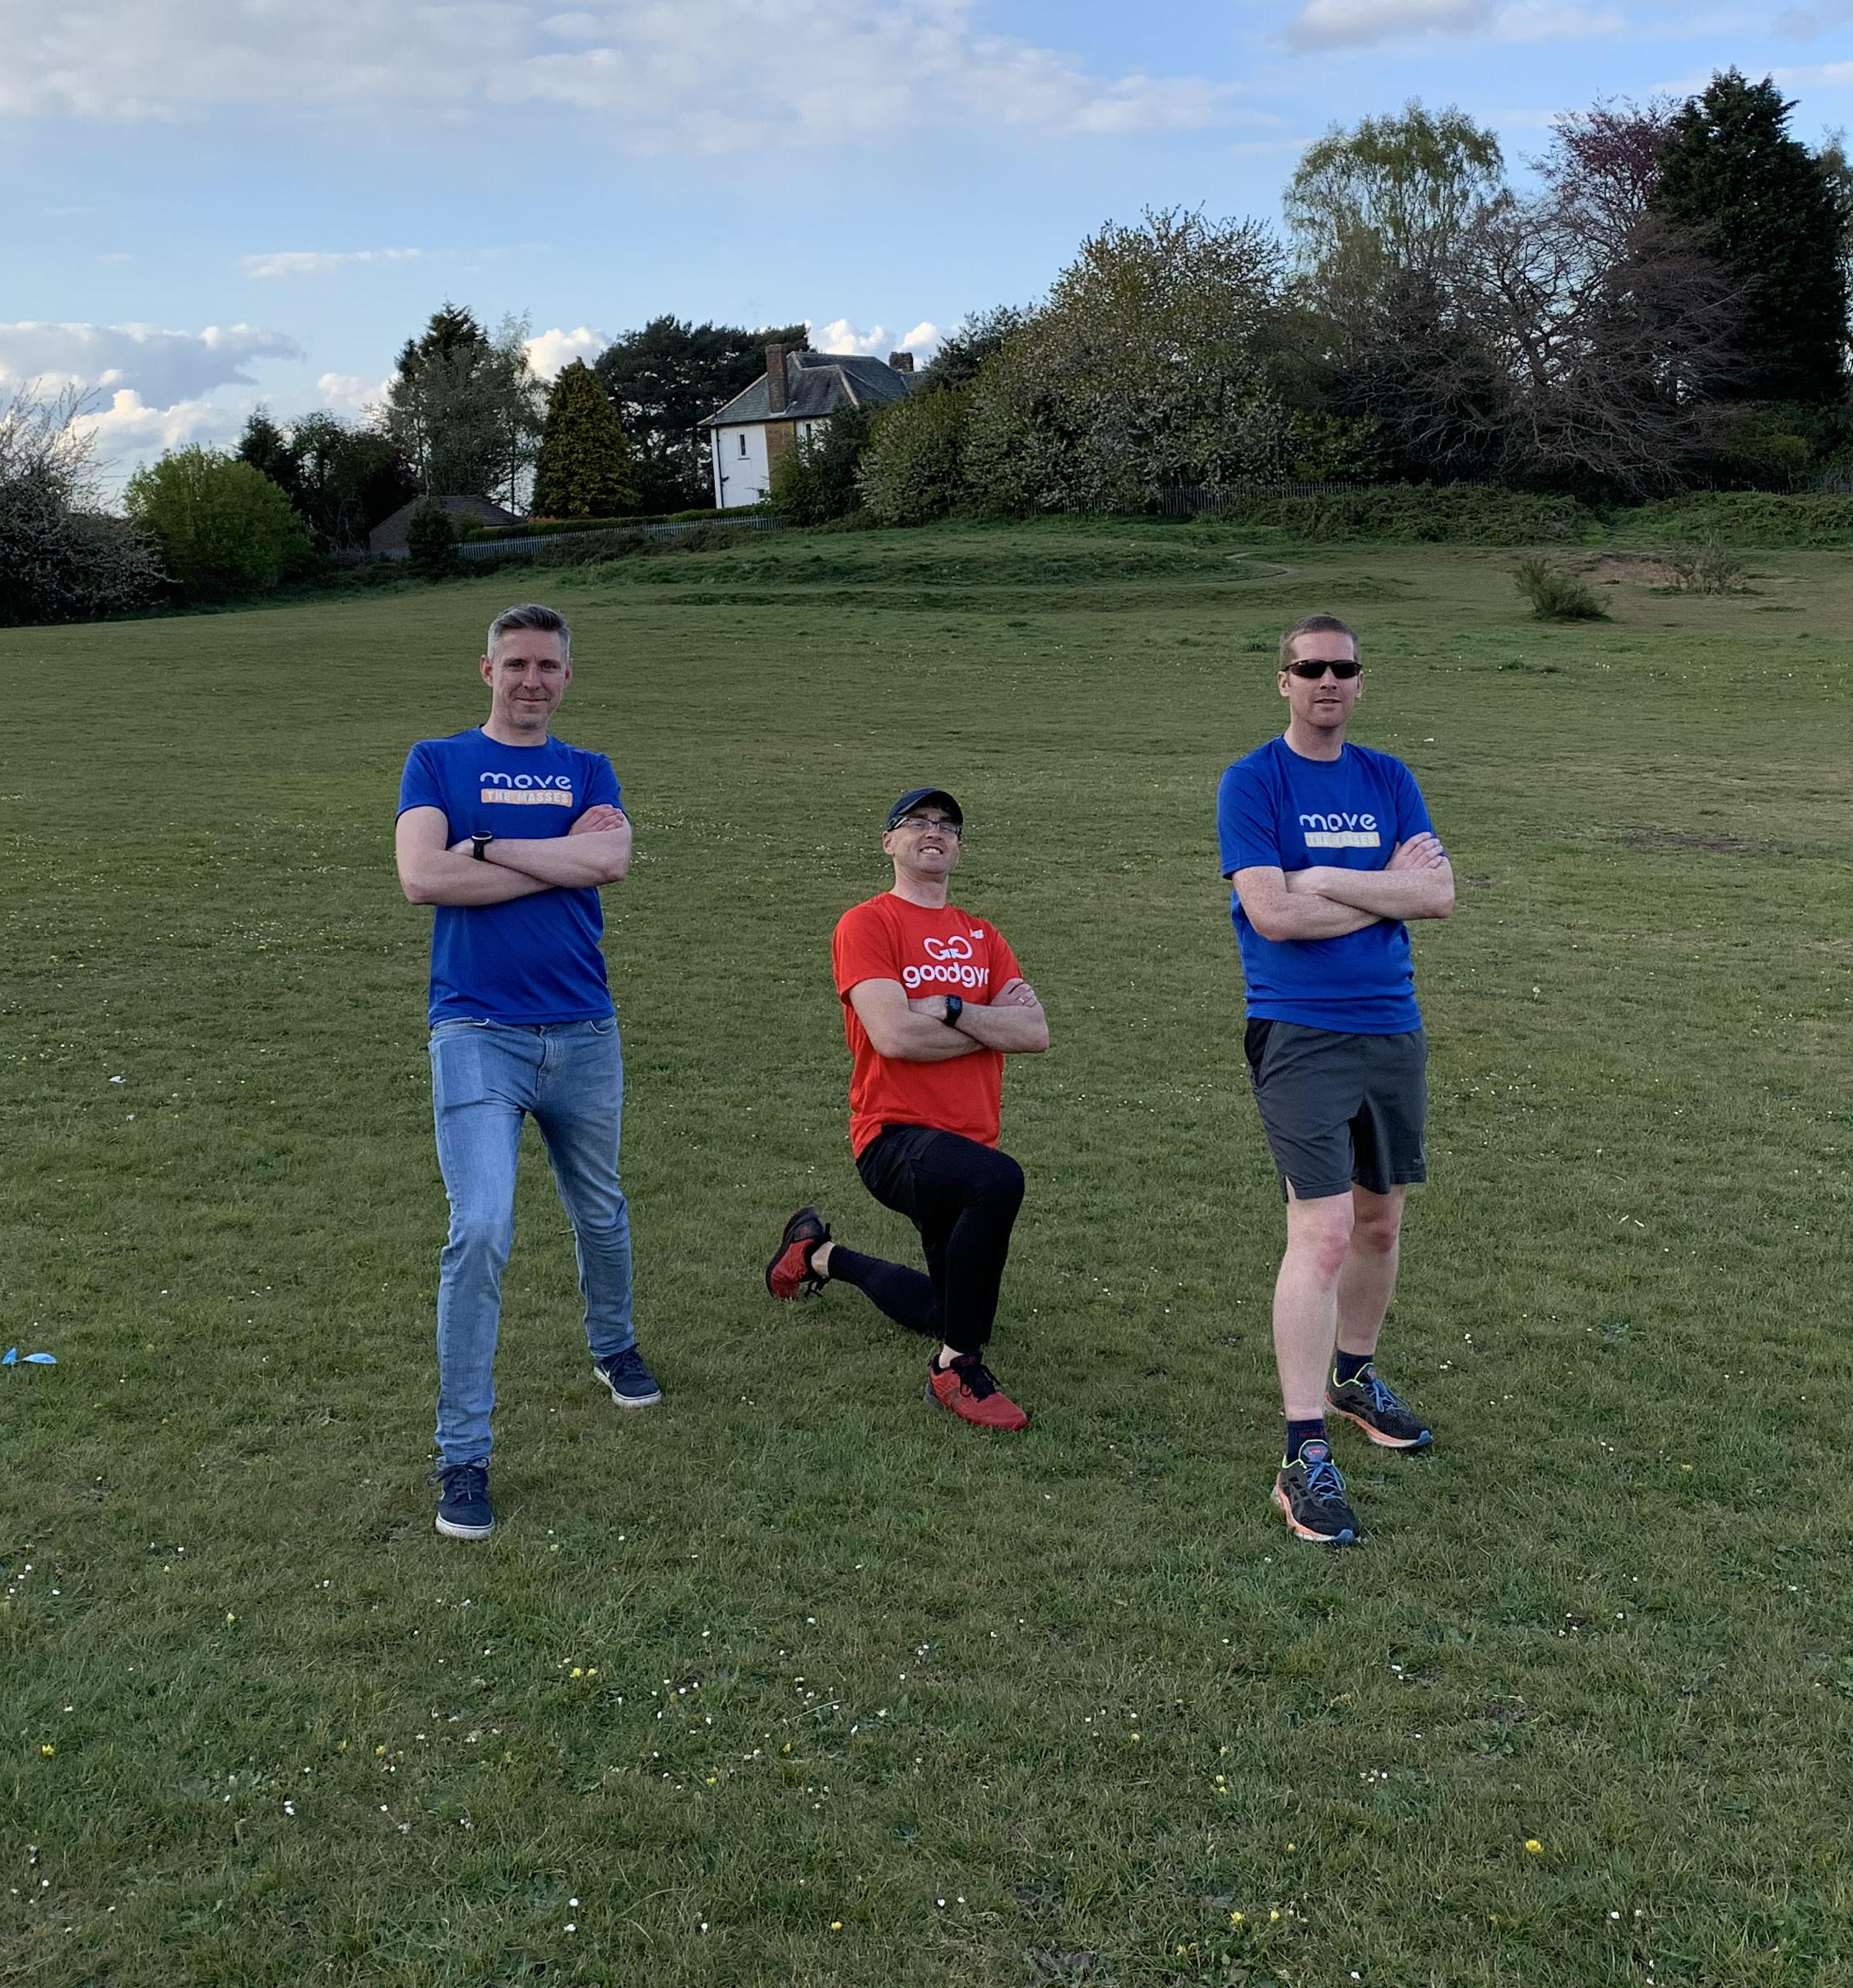 Ed, Michael, and Michal pose for a photo to promote their 25 hour challenge